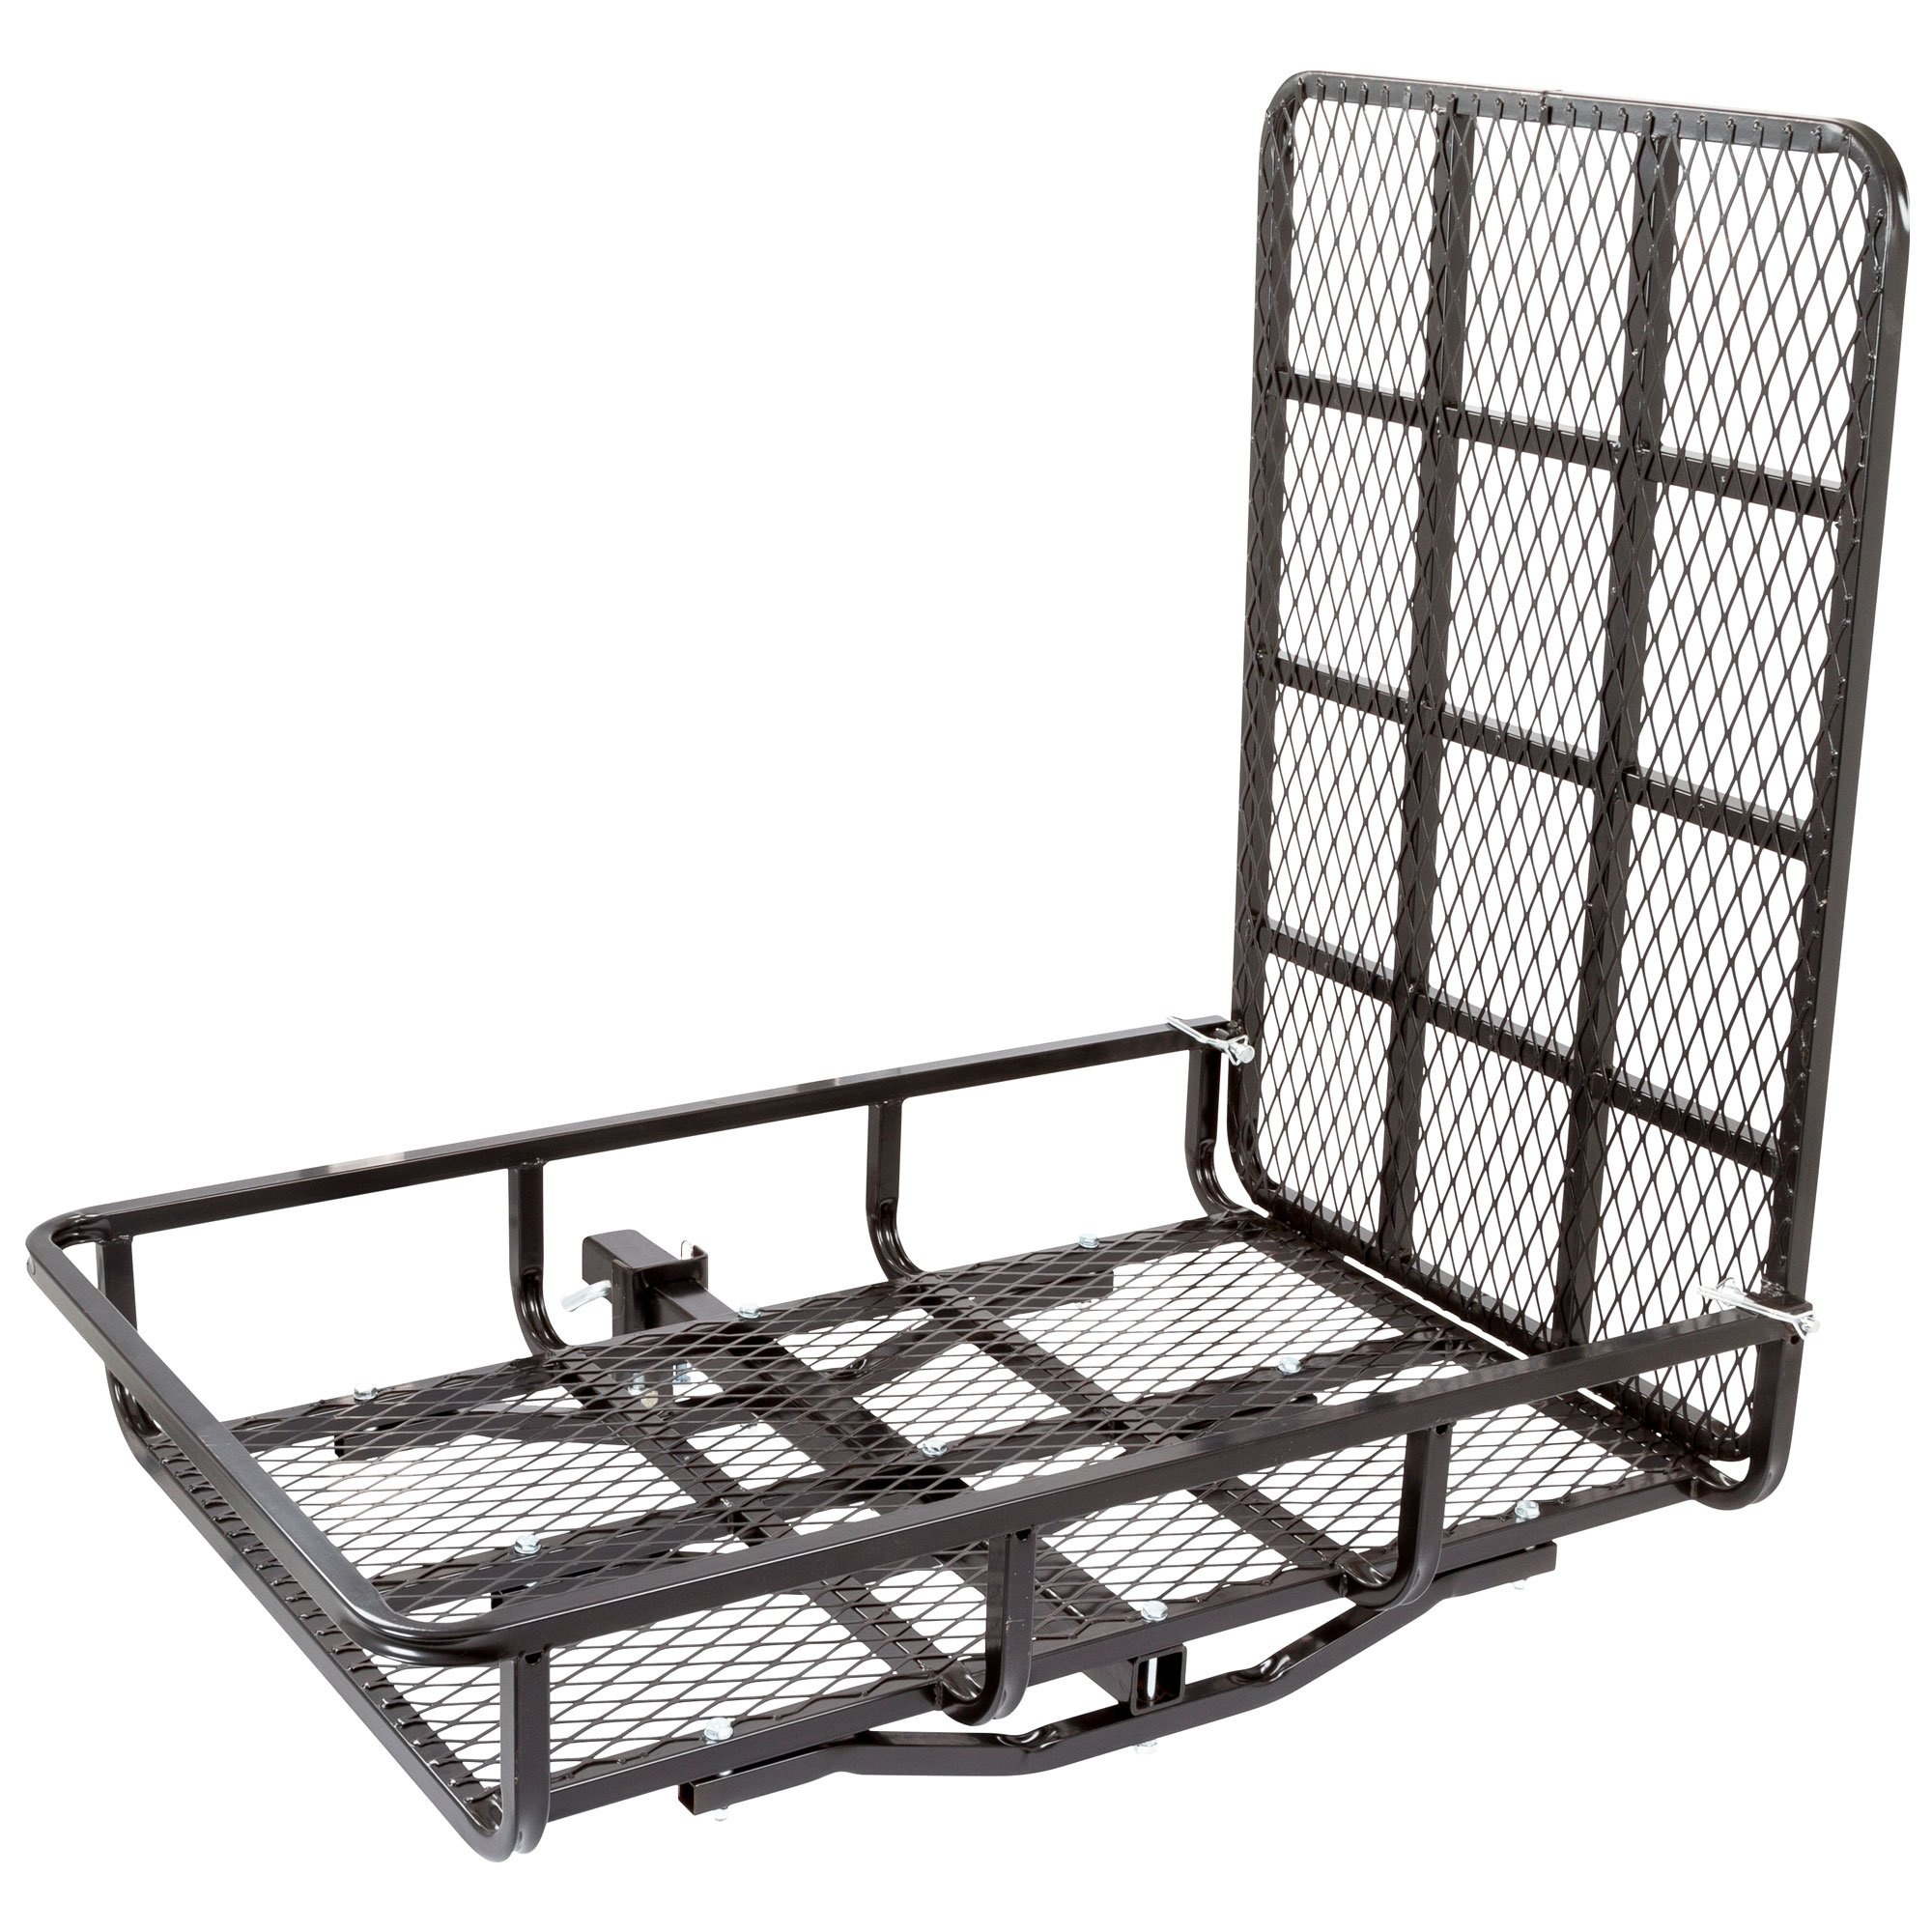 Apex UCC500 Steel Utility Cargo Carrier by Apex